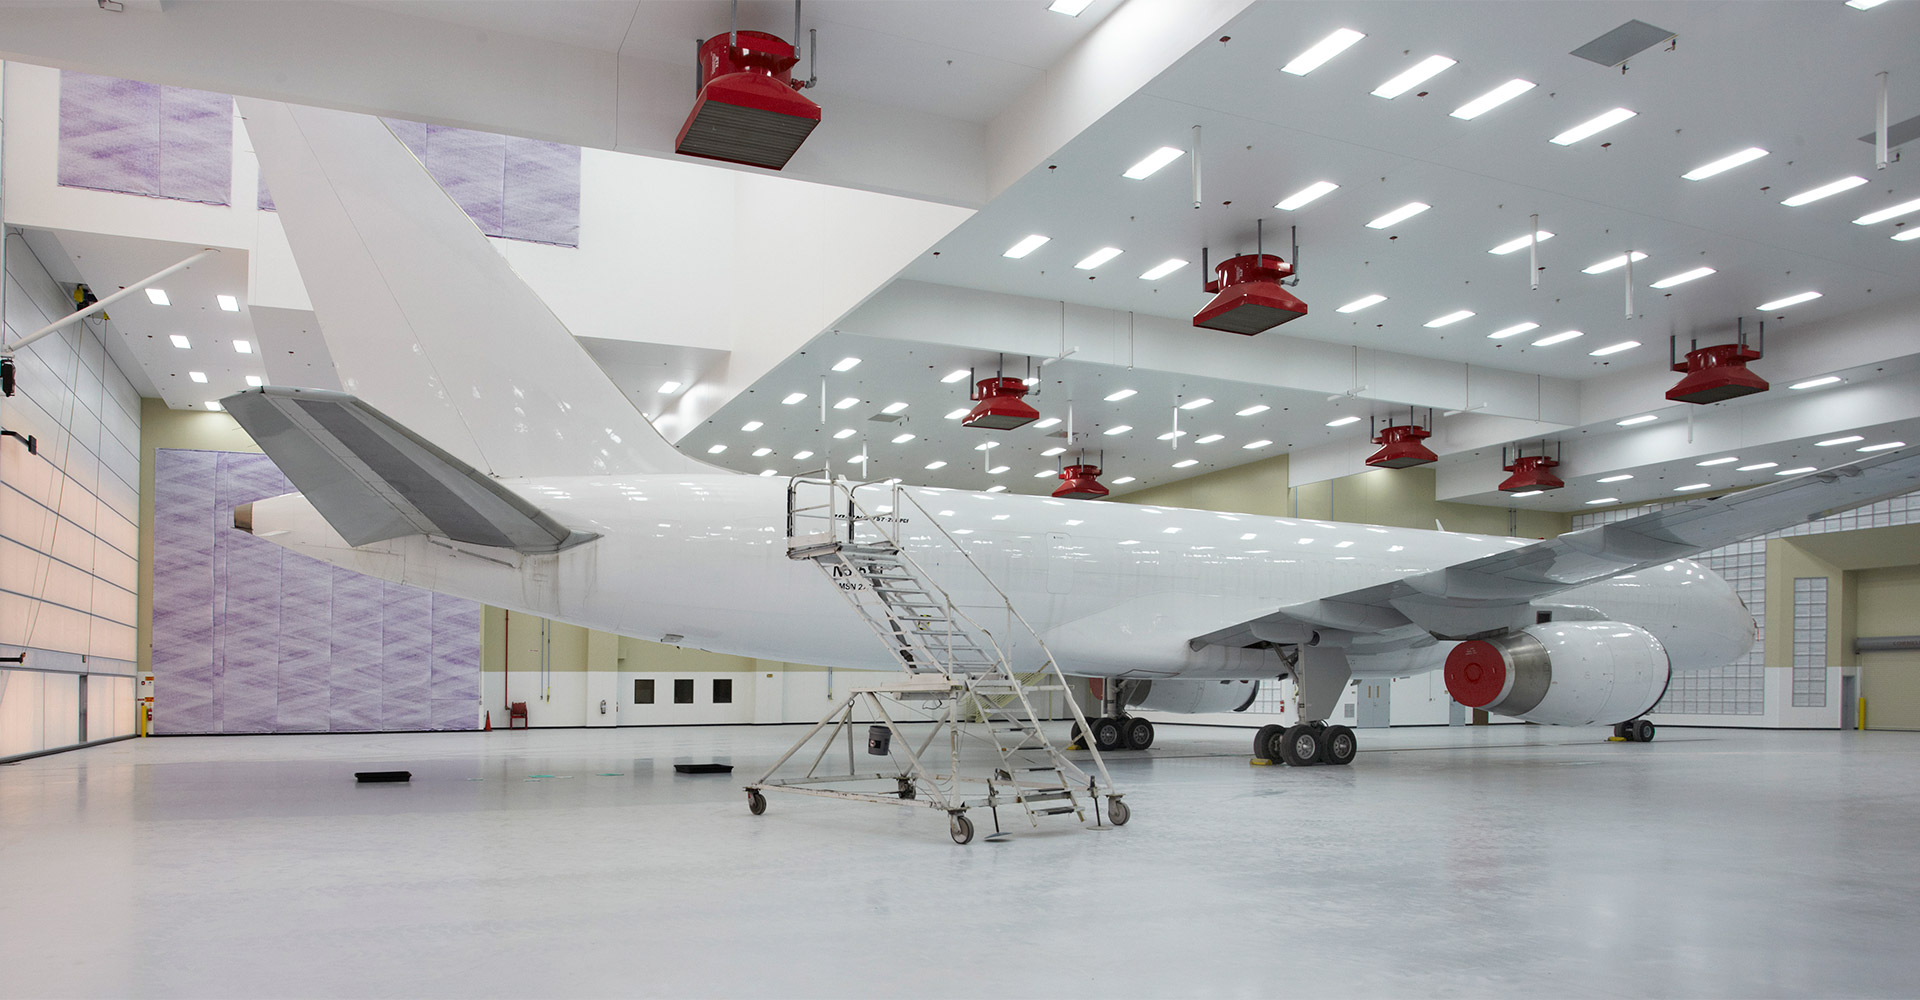 Interior of FSCJ aircraft service hangar.